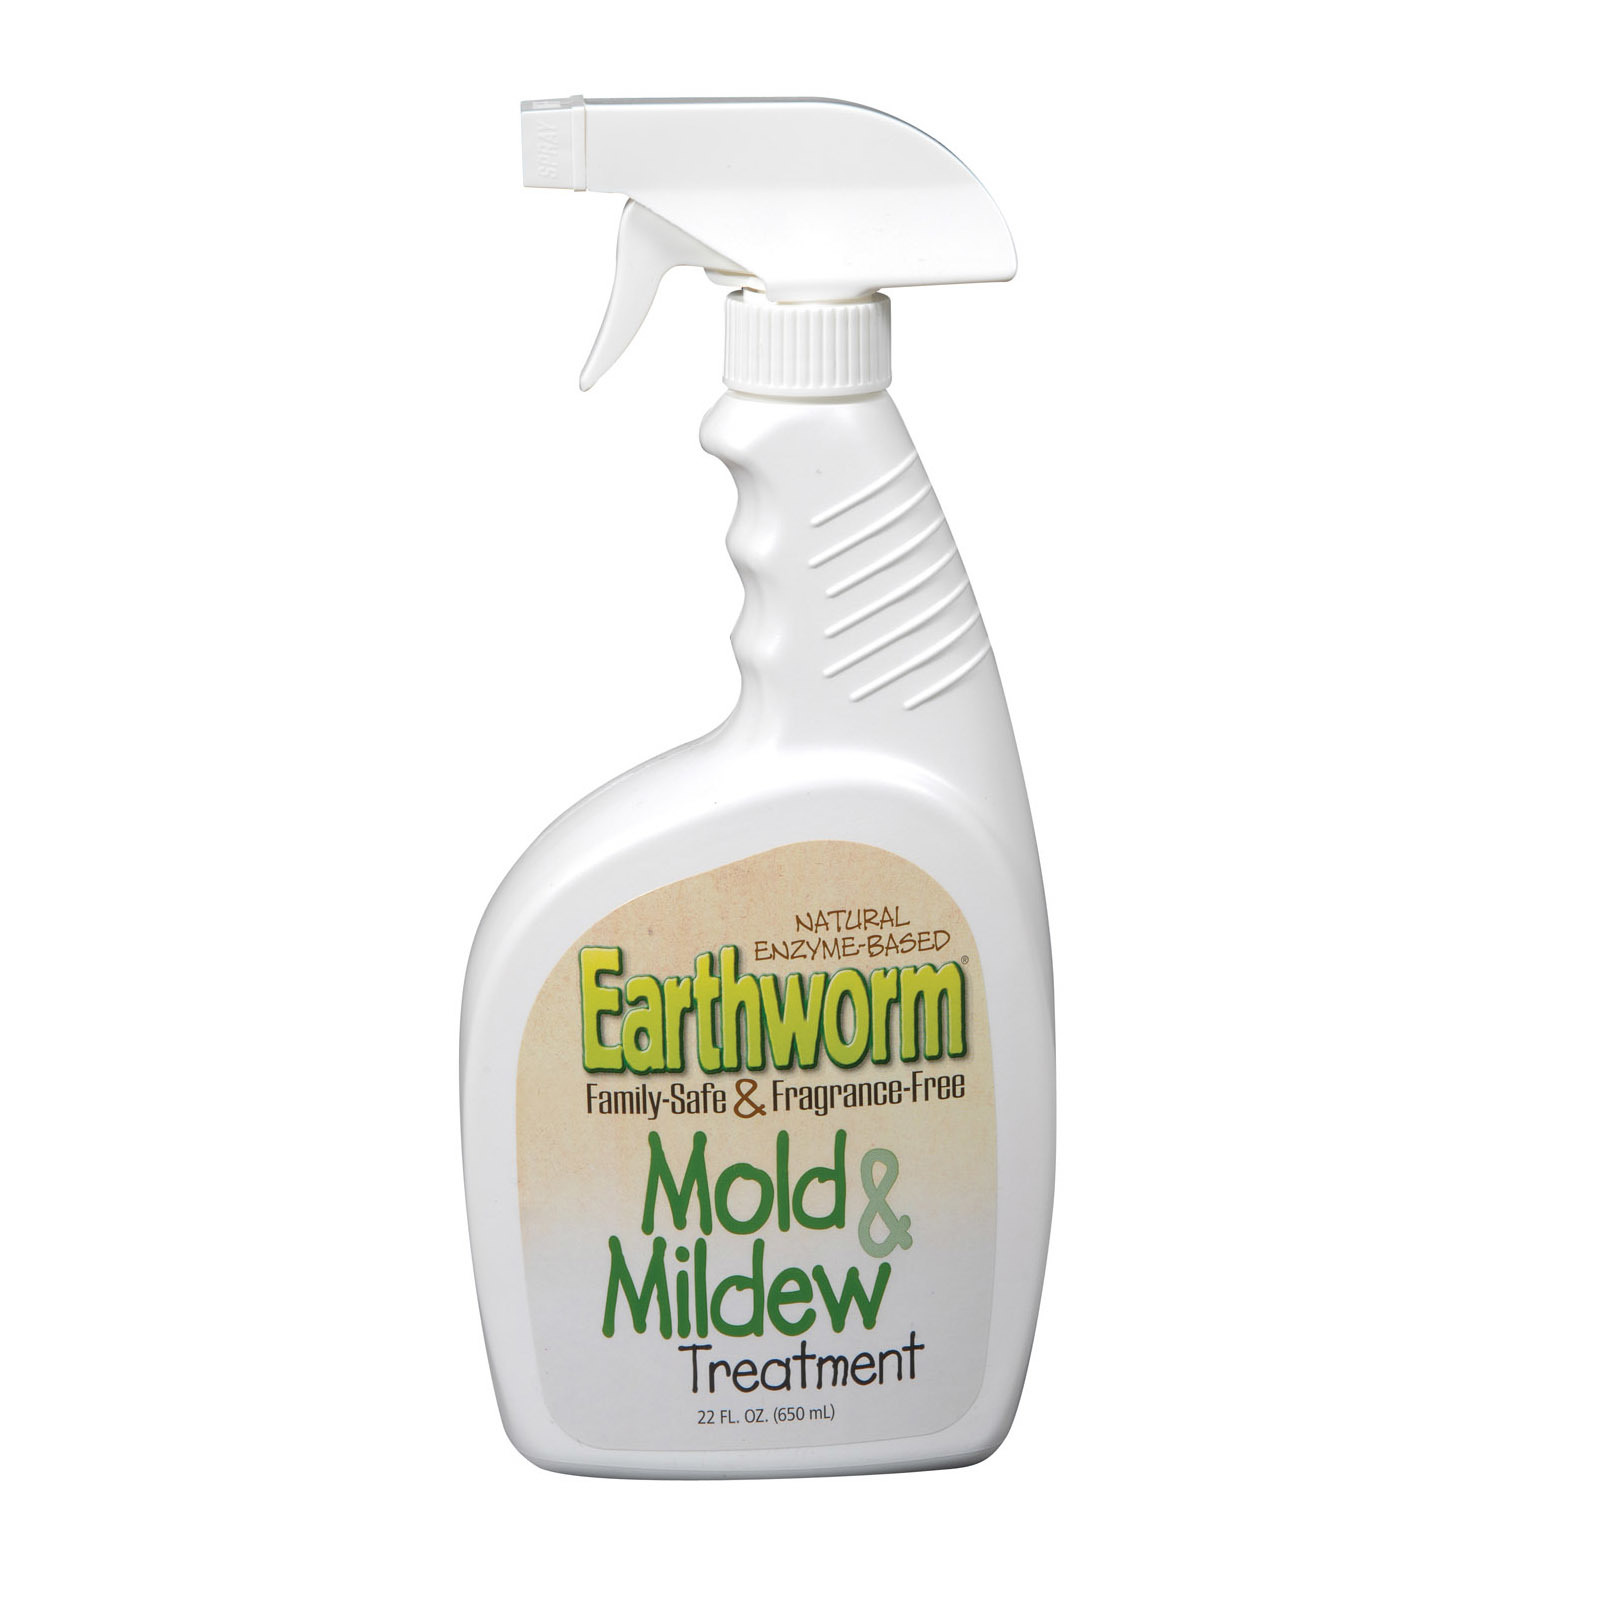 Earthworm Mold Stain and Mildew Stain Treatment - Case of 6 - 22 FL oz.